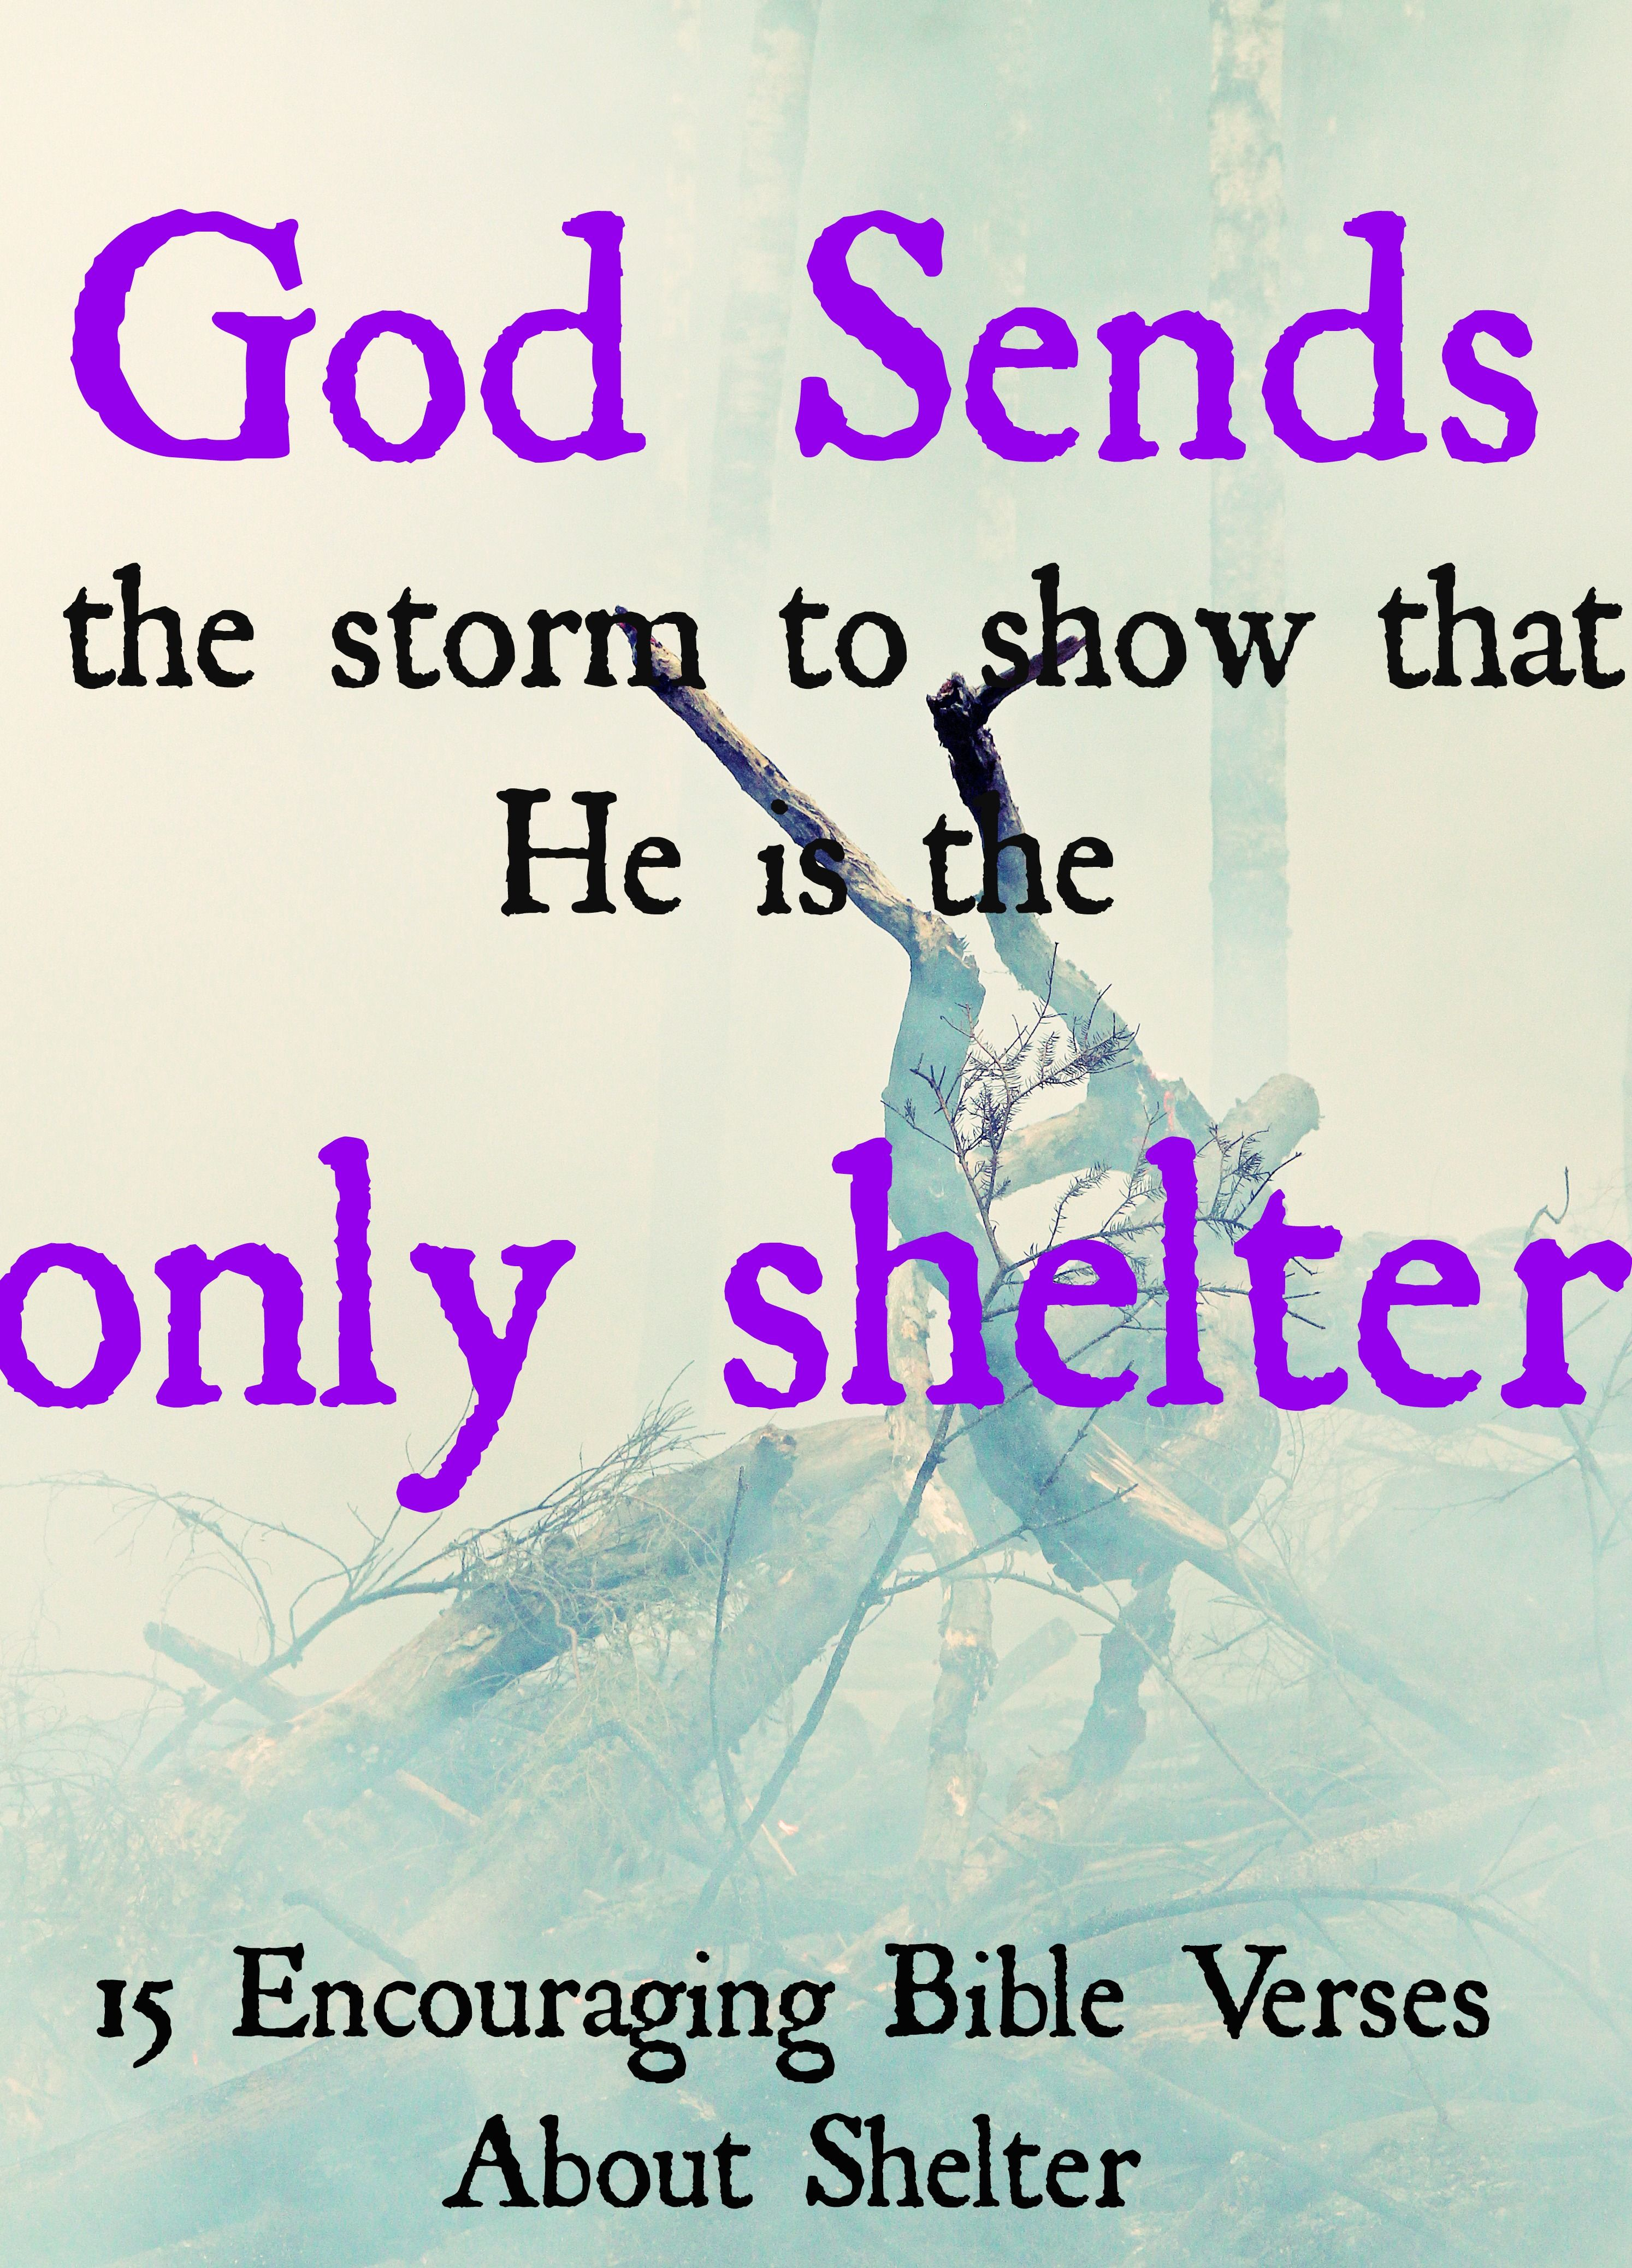 Christian Quotes Encouragement: Shelter, Verses And Storms